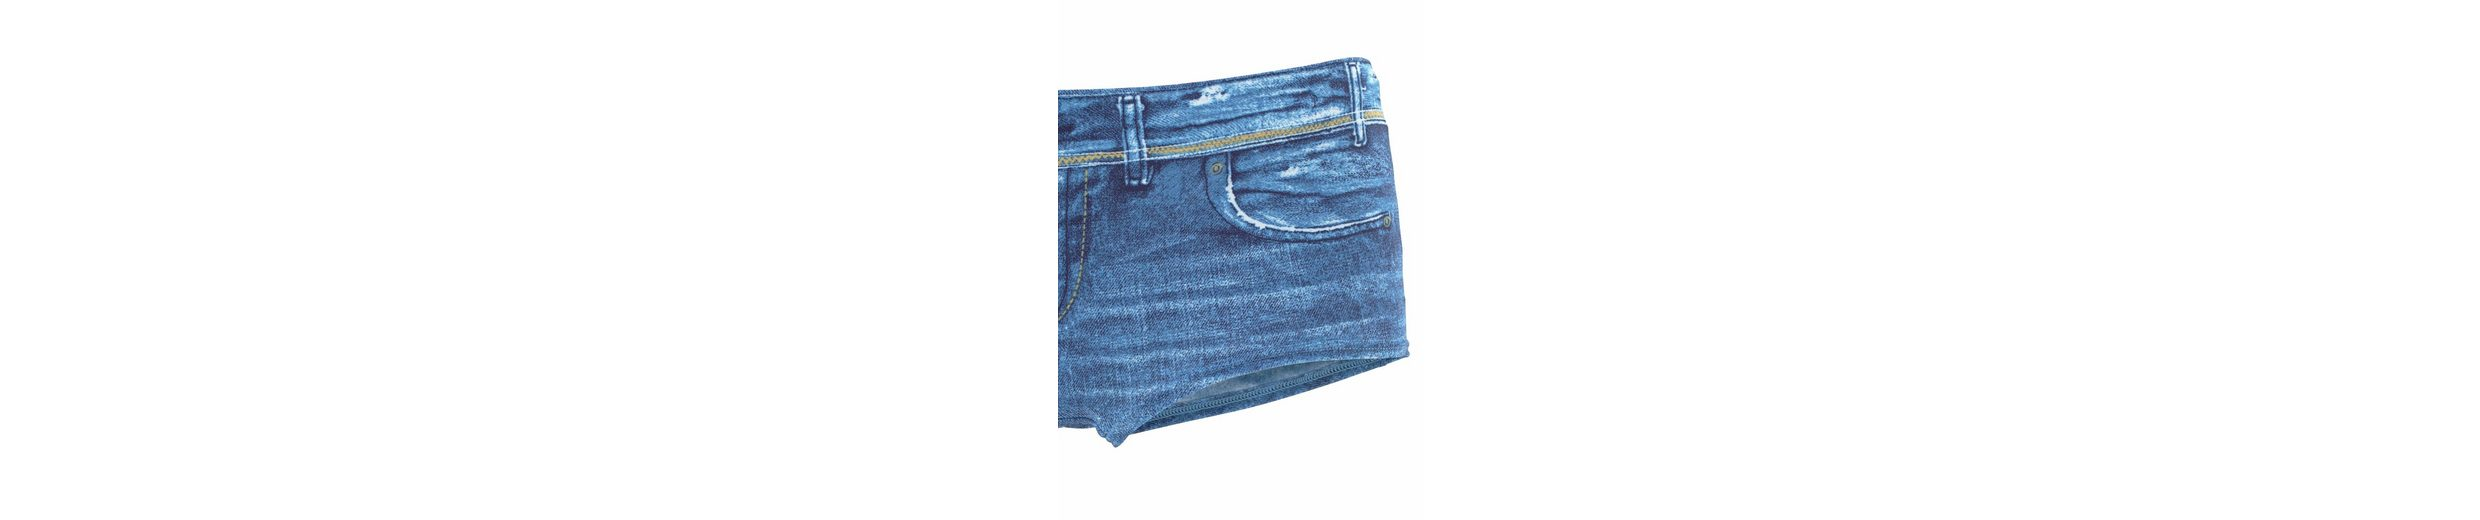 Bade Jeans KangaROOS KangaROOS Bade Optik angesagter Hotpants in q14pREn